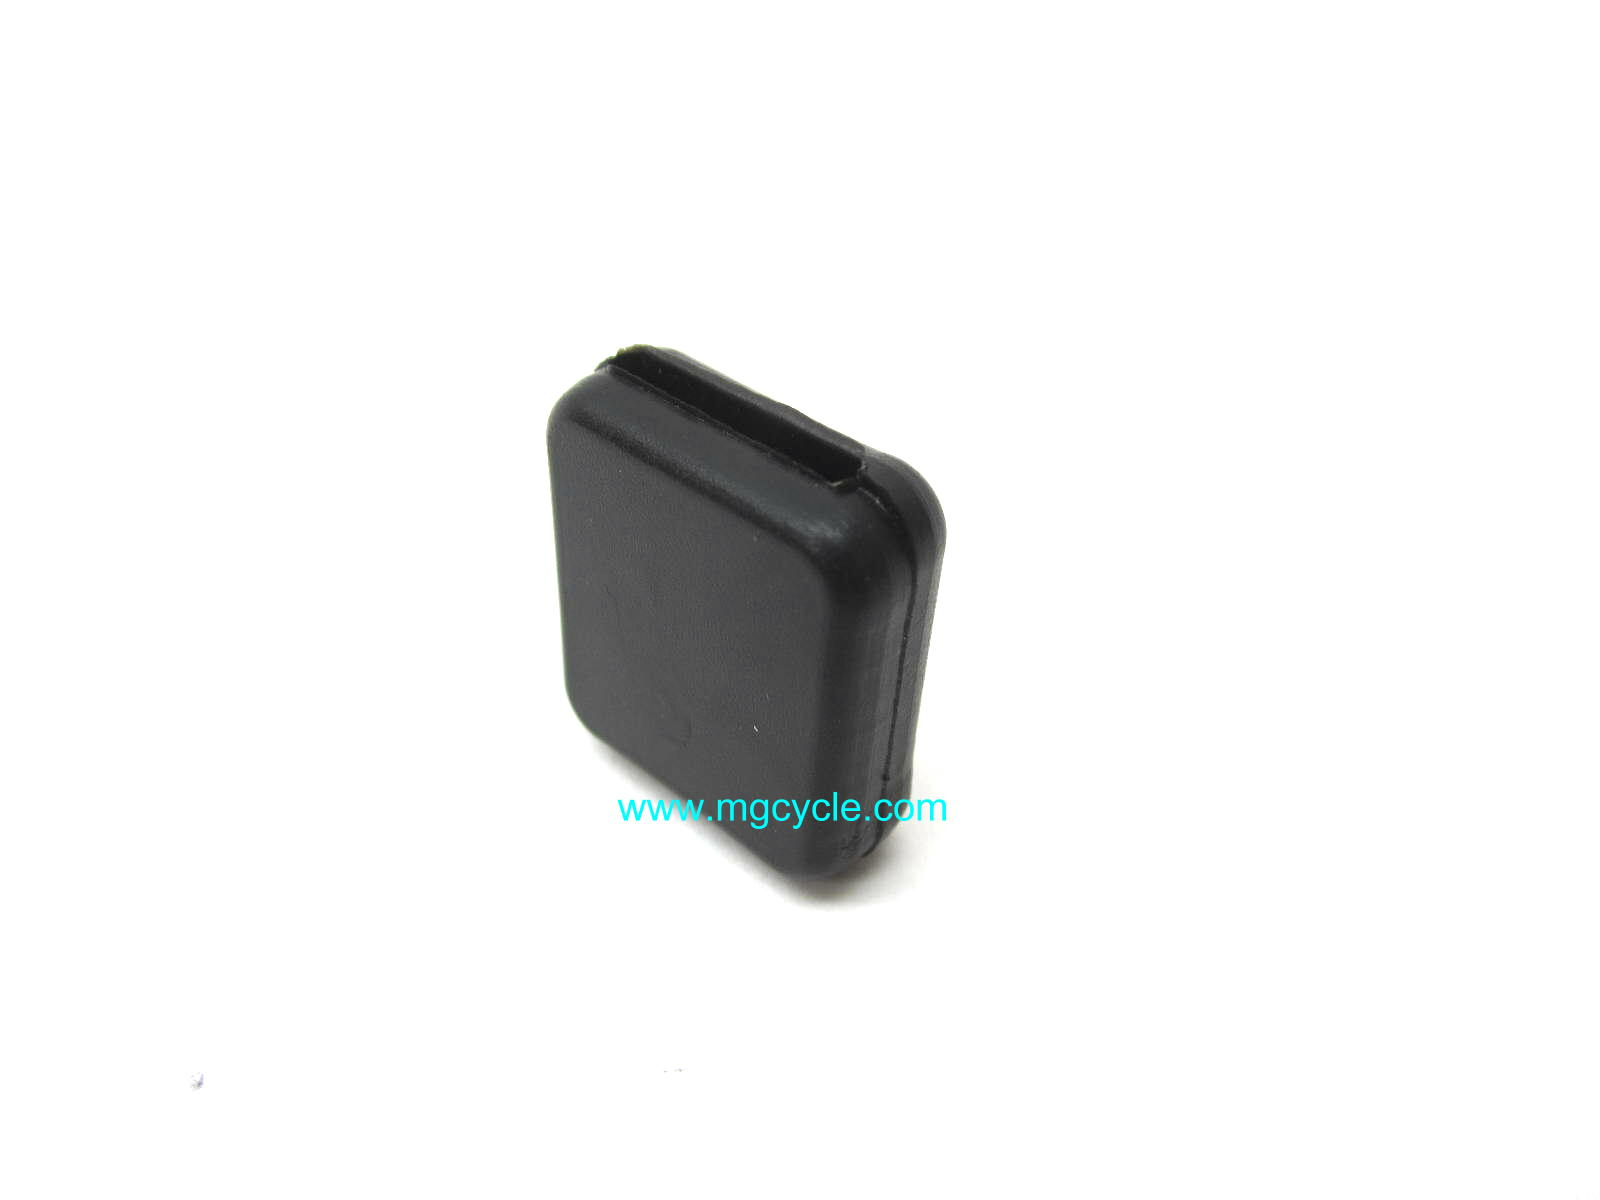 Seat latch rubber cover V7 Sport, 850 LeMans, 850T, T3, G5, etc